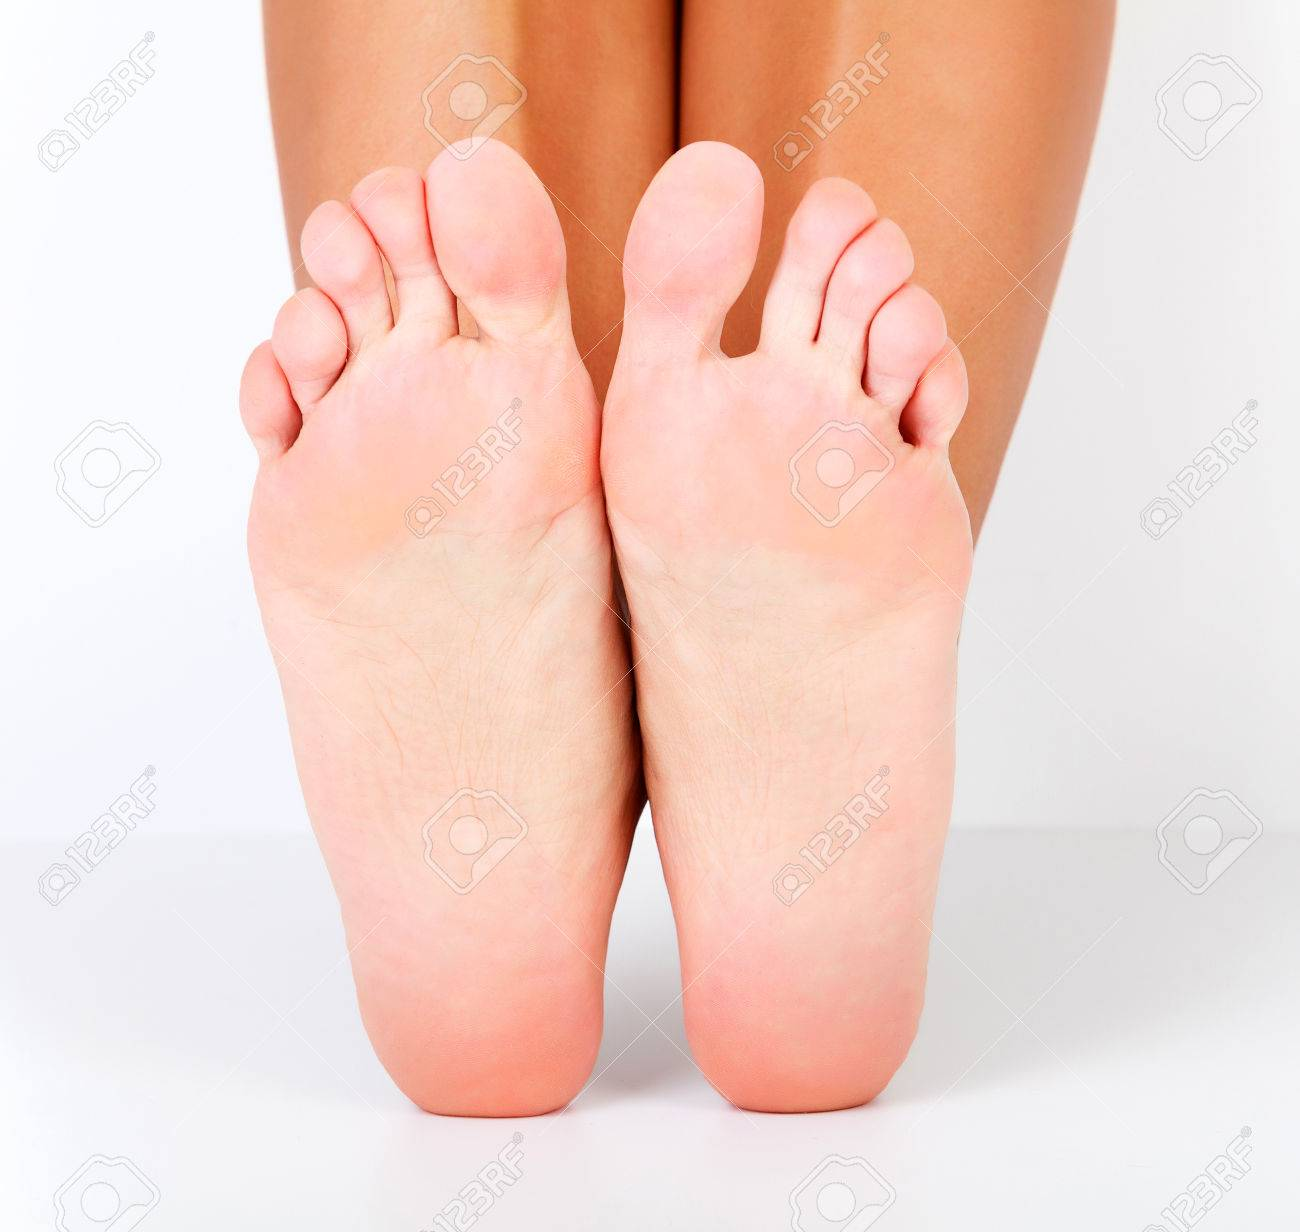 Female Bare Feet On White Background Stock Photo Picture And 1300x1232